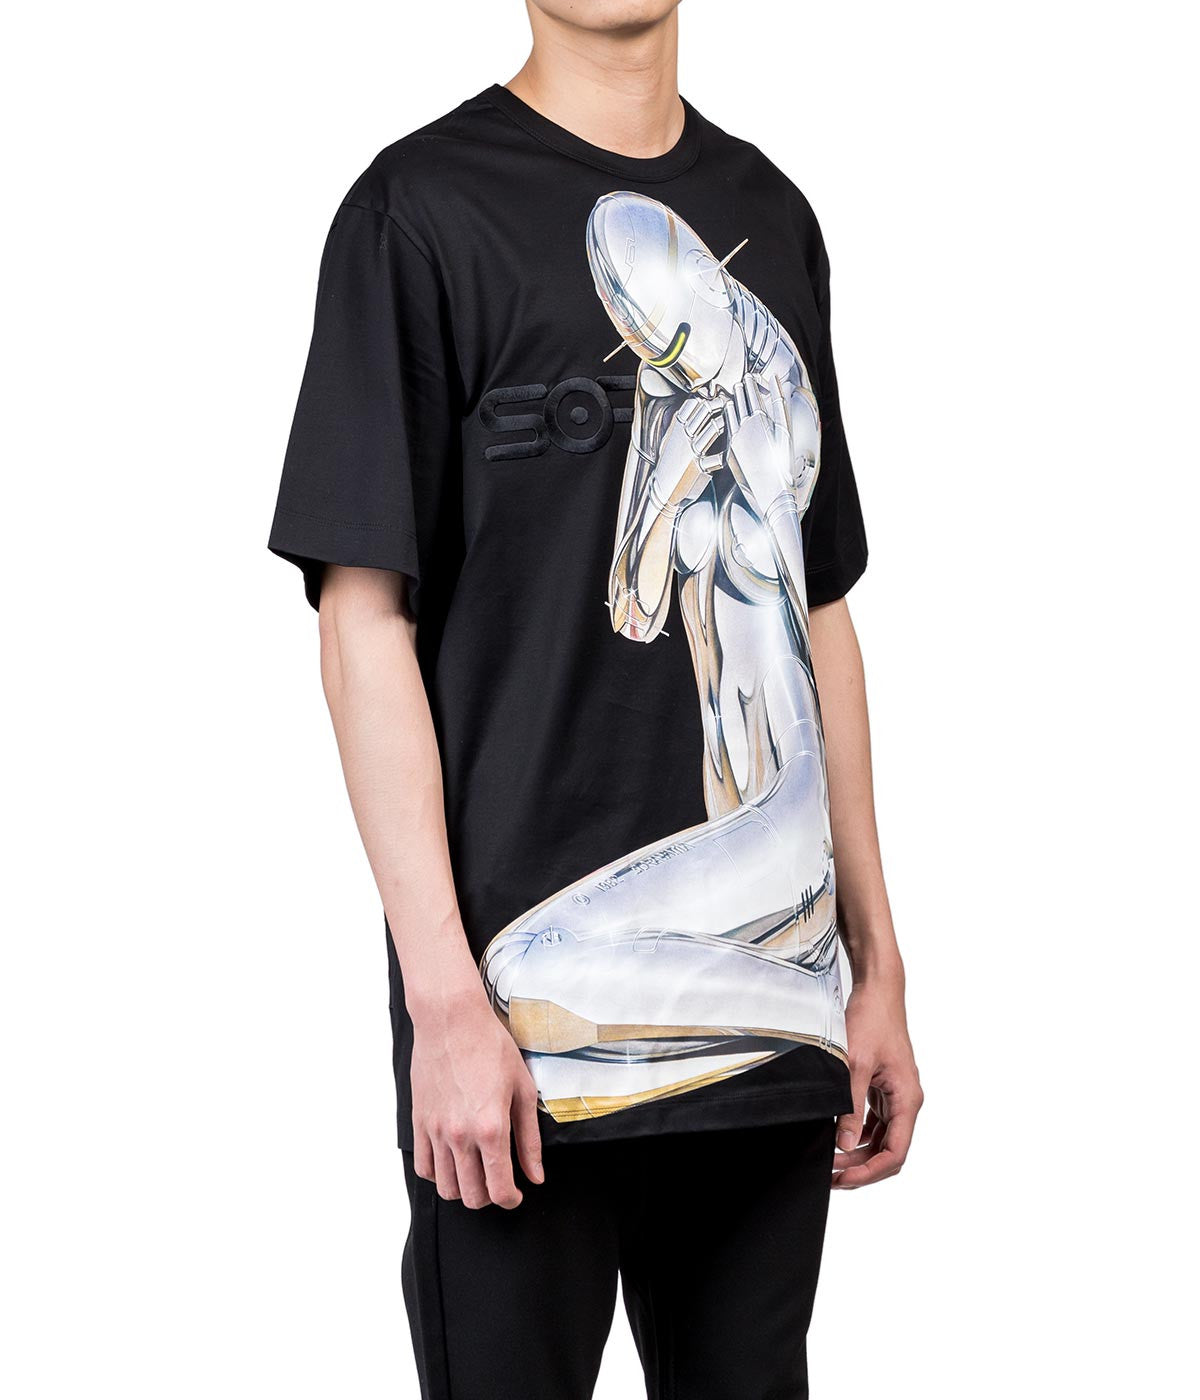 Sorayama Oversized Graphic T-Shirt